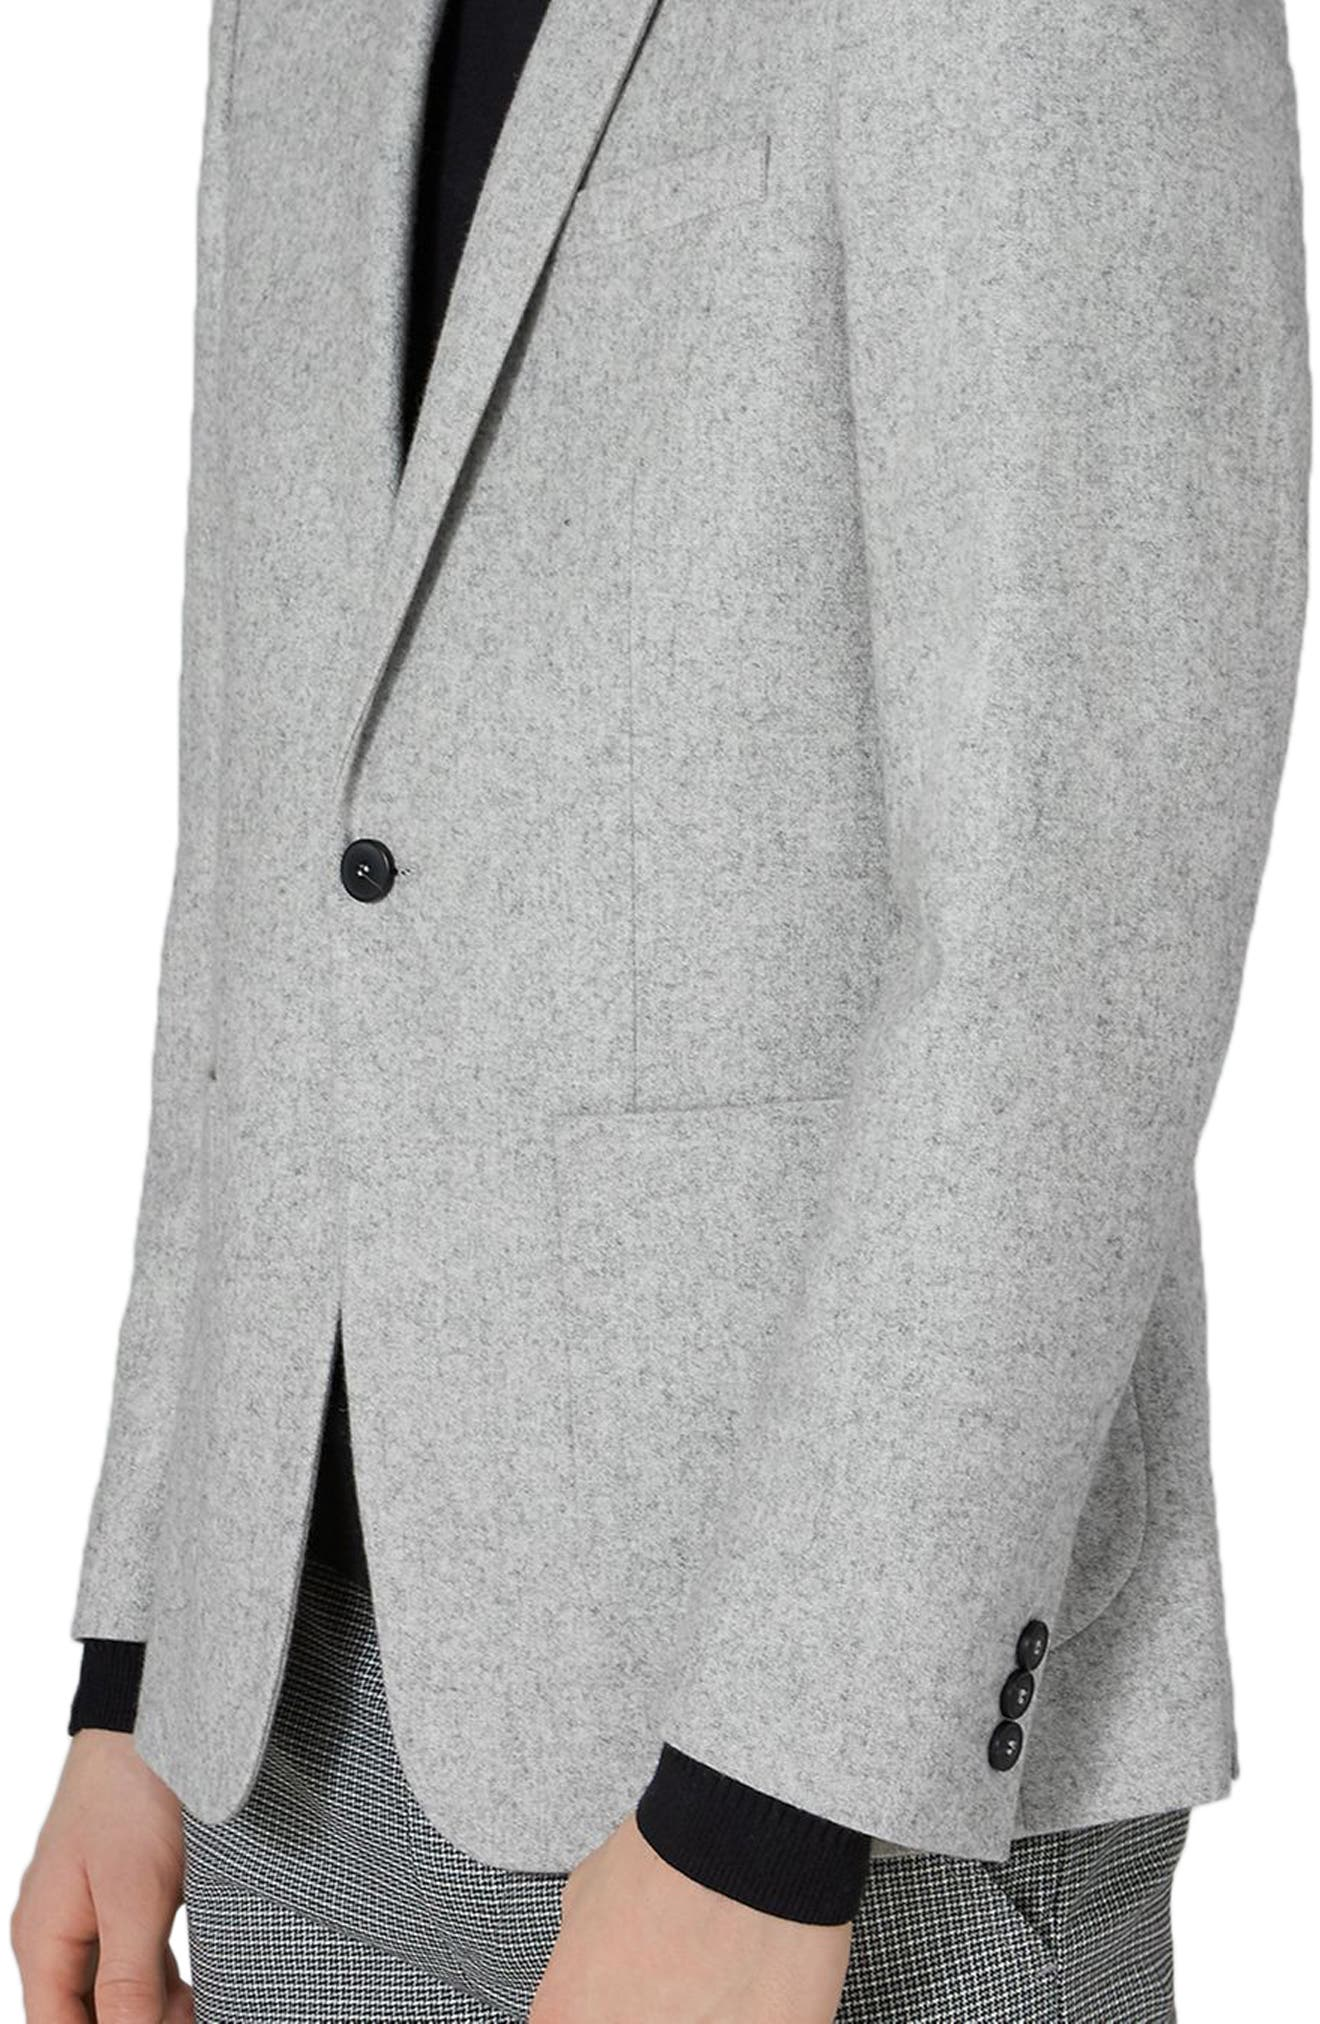 Murdoch One-Button Jacket,                             Alternate thumbnail 3, color,                             050